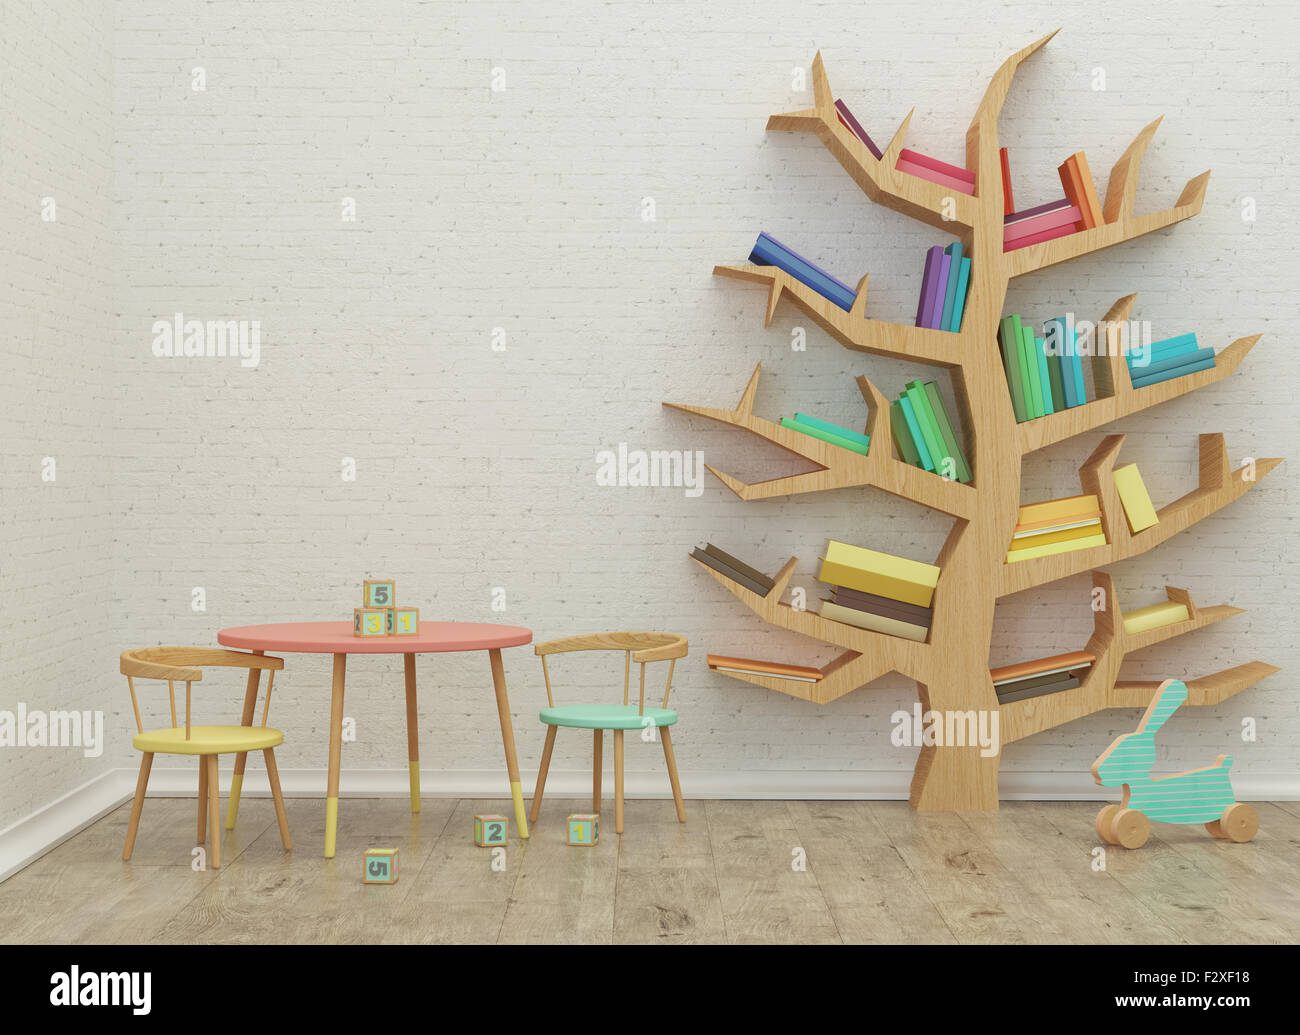 kids game room interior 3d rendering image with colorful books and toys - Stock Image